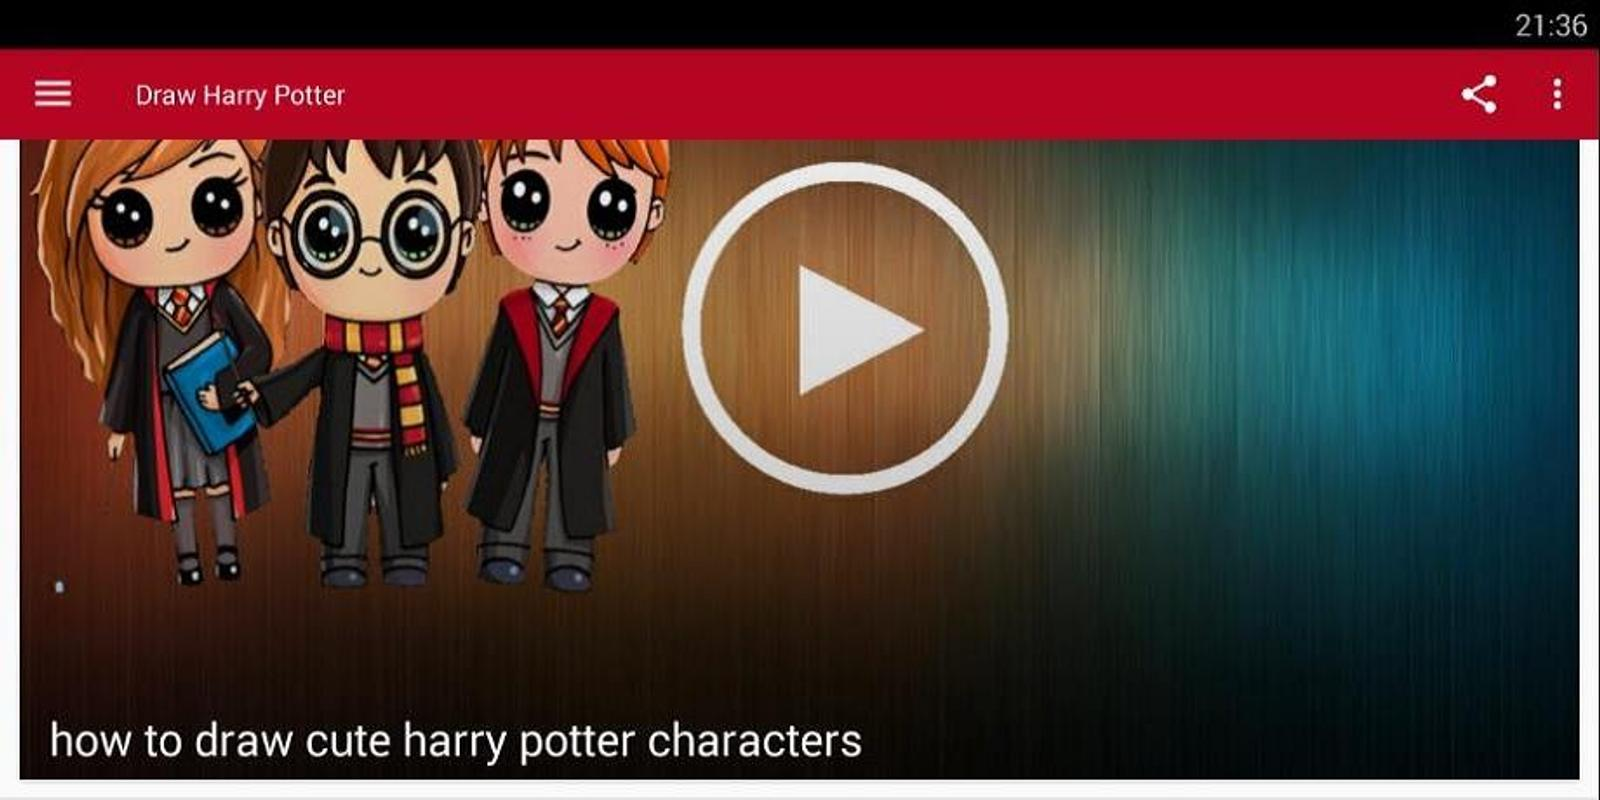 How To Draw Cute Harry Potter For Android Apk Download